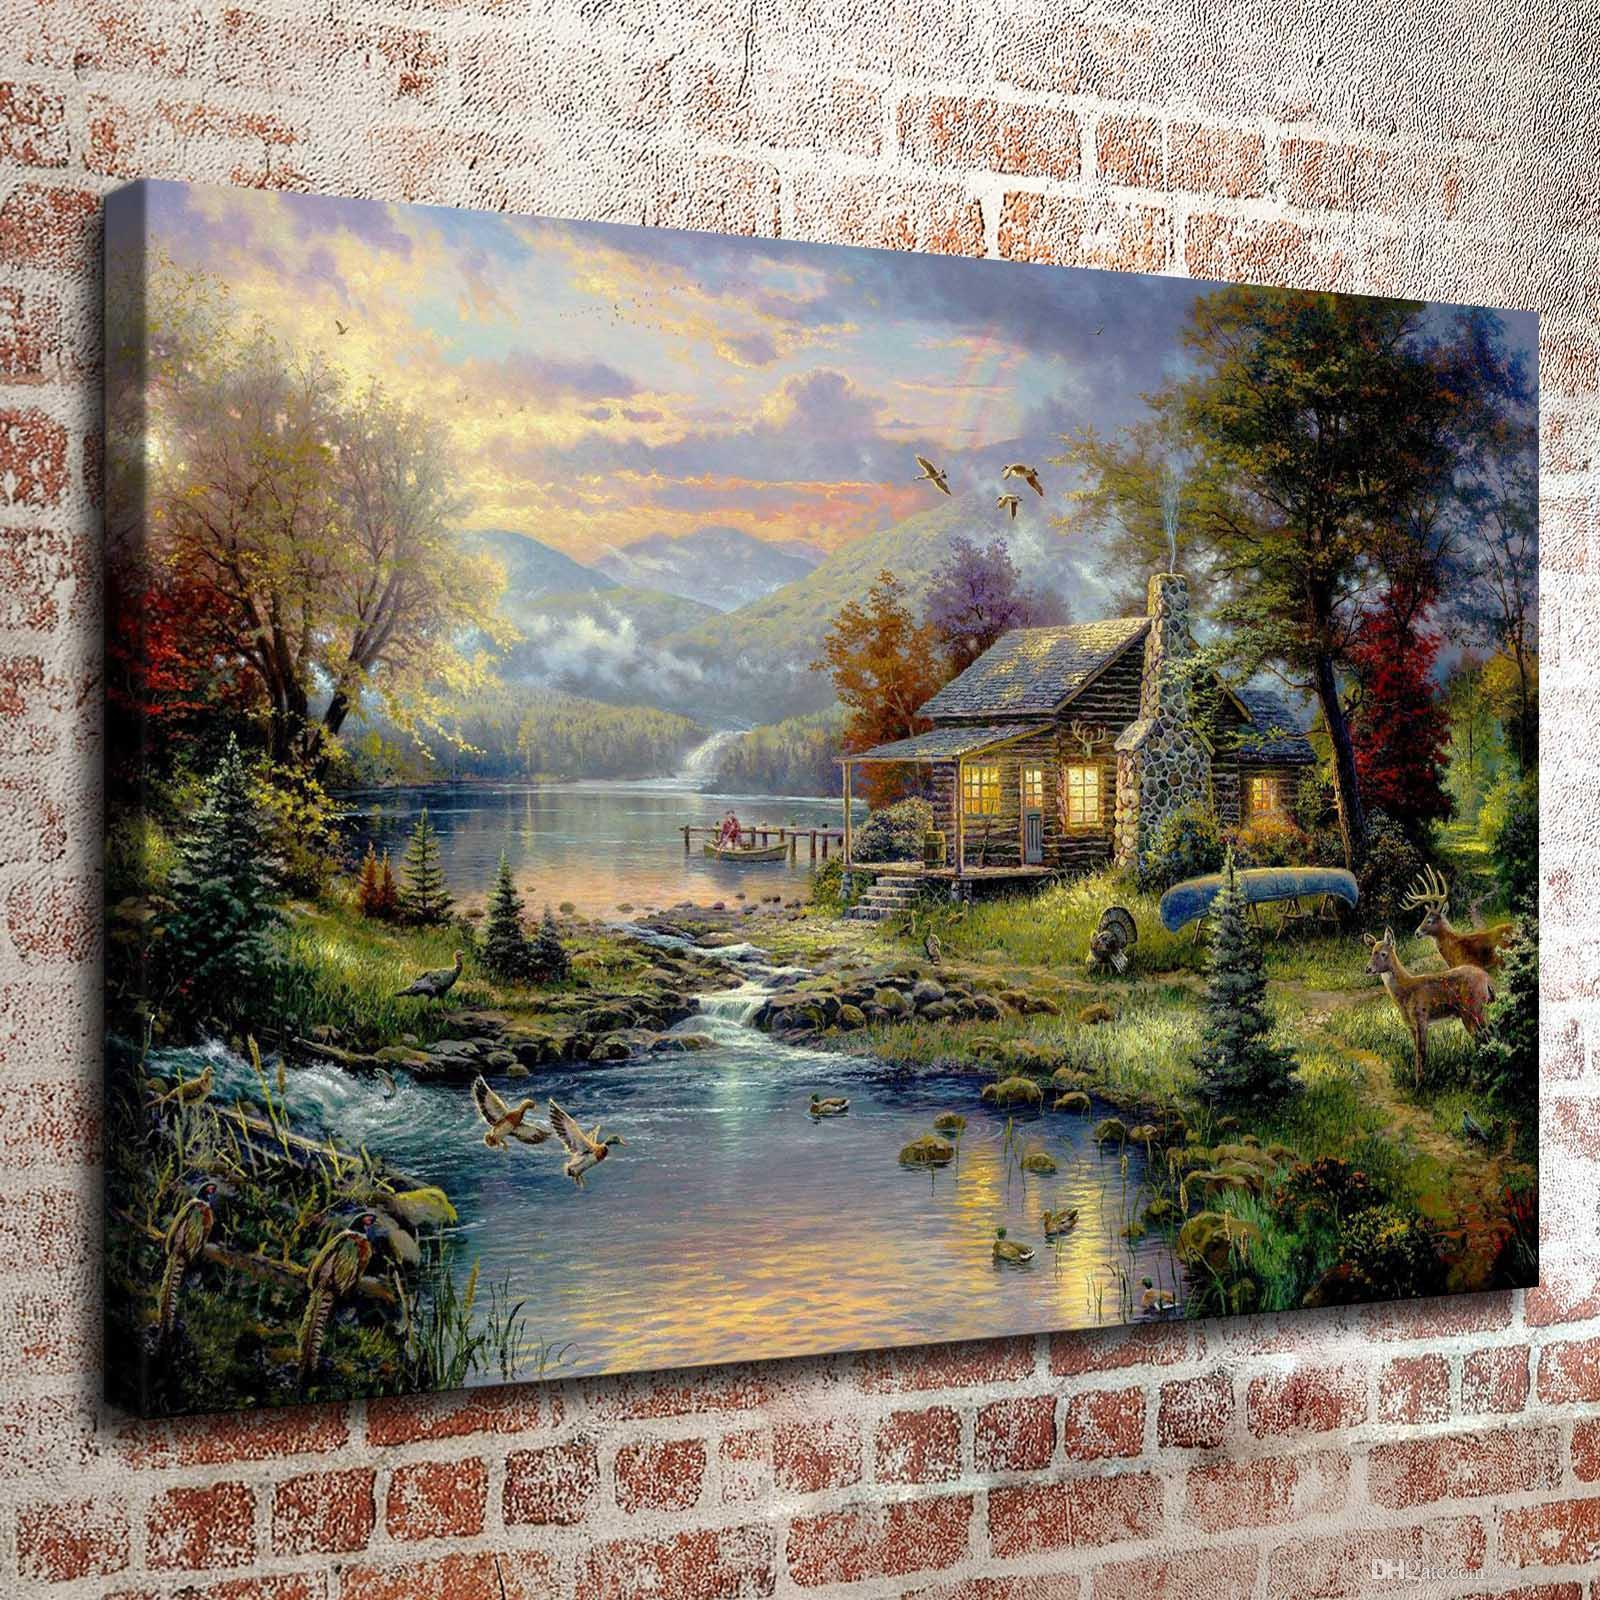 2019 Thomas Kinkade Oil Painting Landscape Rural Cottage Series 3 Picture Art Hd Canvas Print Wall Art Pictures Home Decor Living Room Decoration From